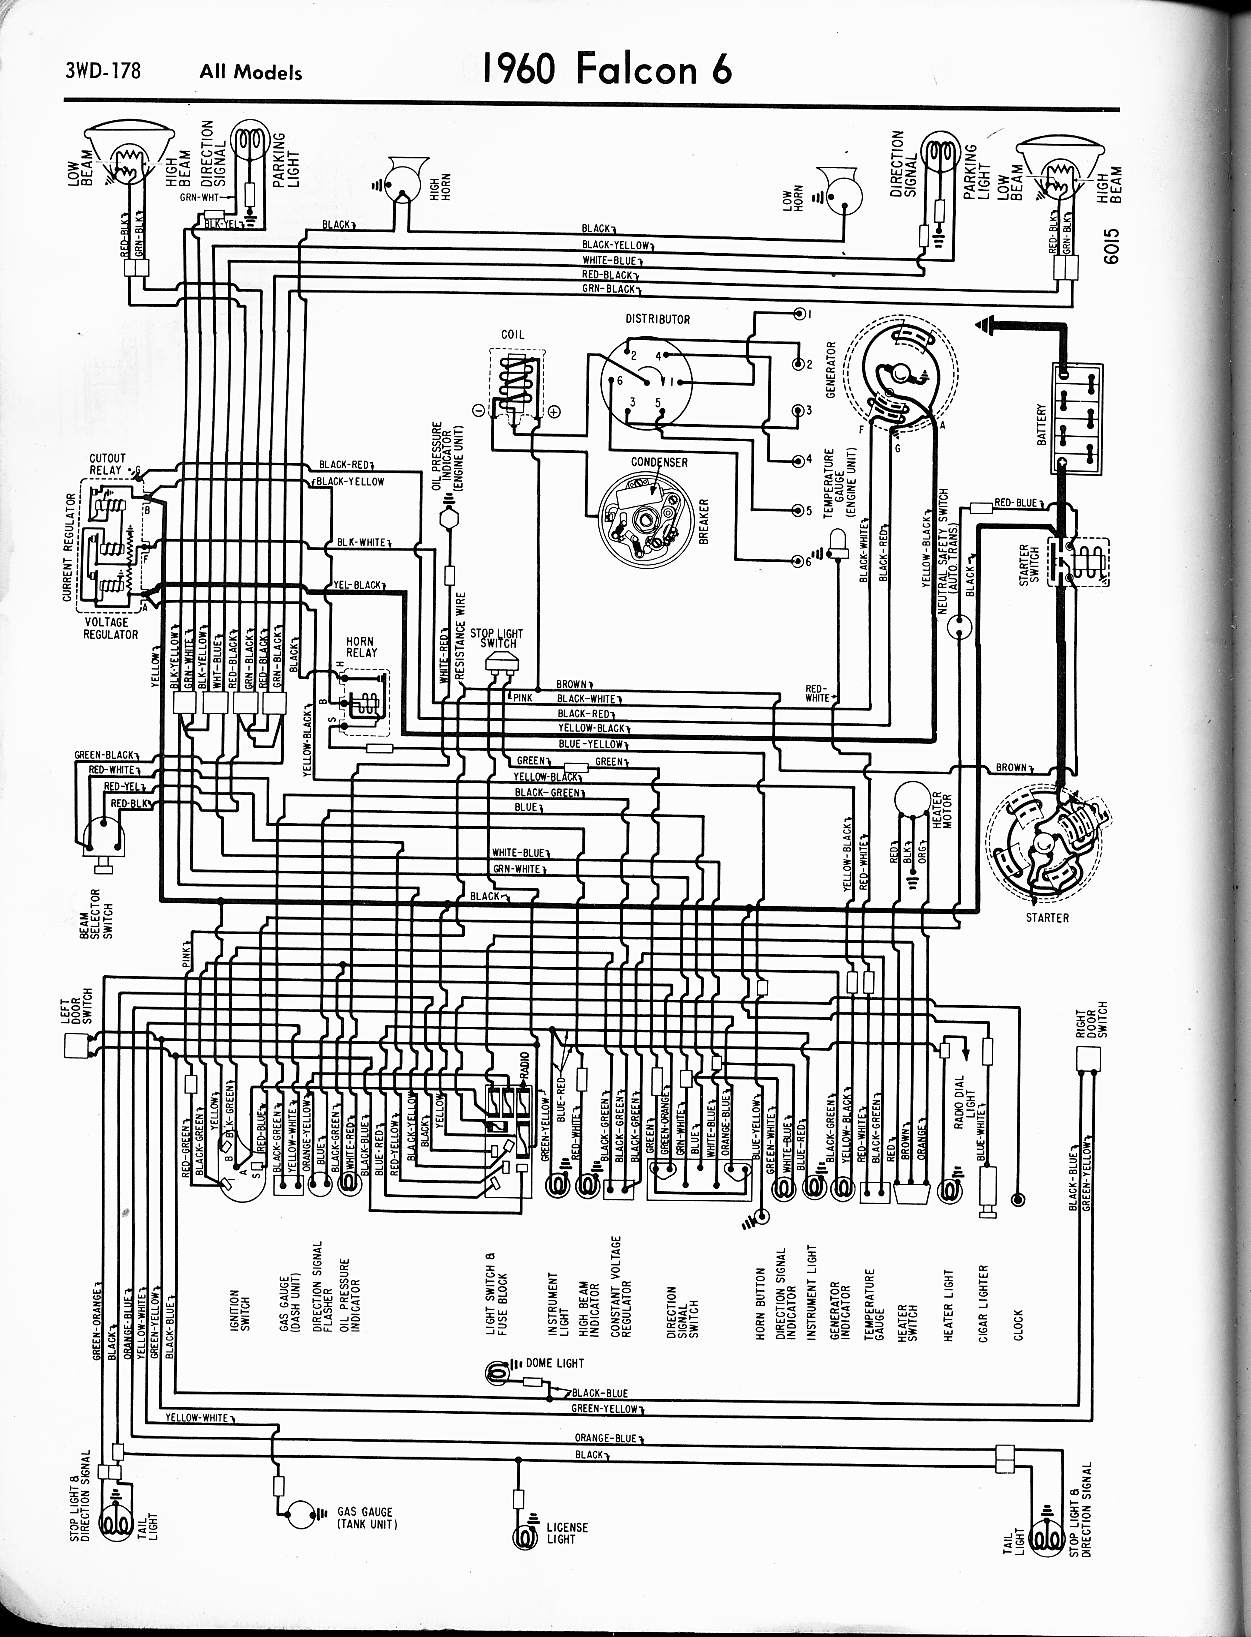 57 65 Ford Wiring Diagrams Cat 963 Engine Diagram 1960 6 Cyl Falcon